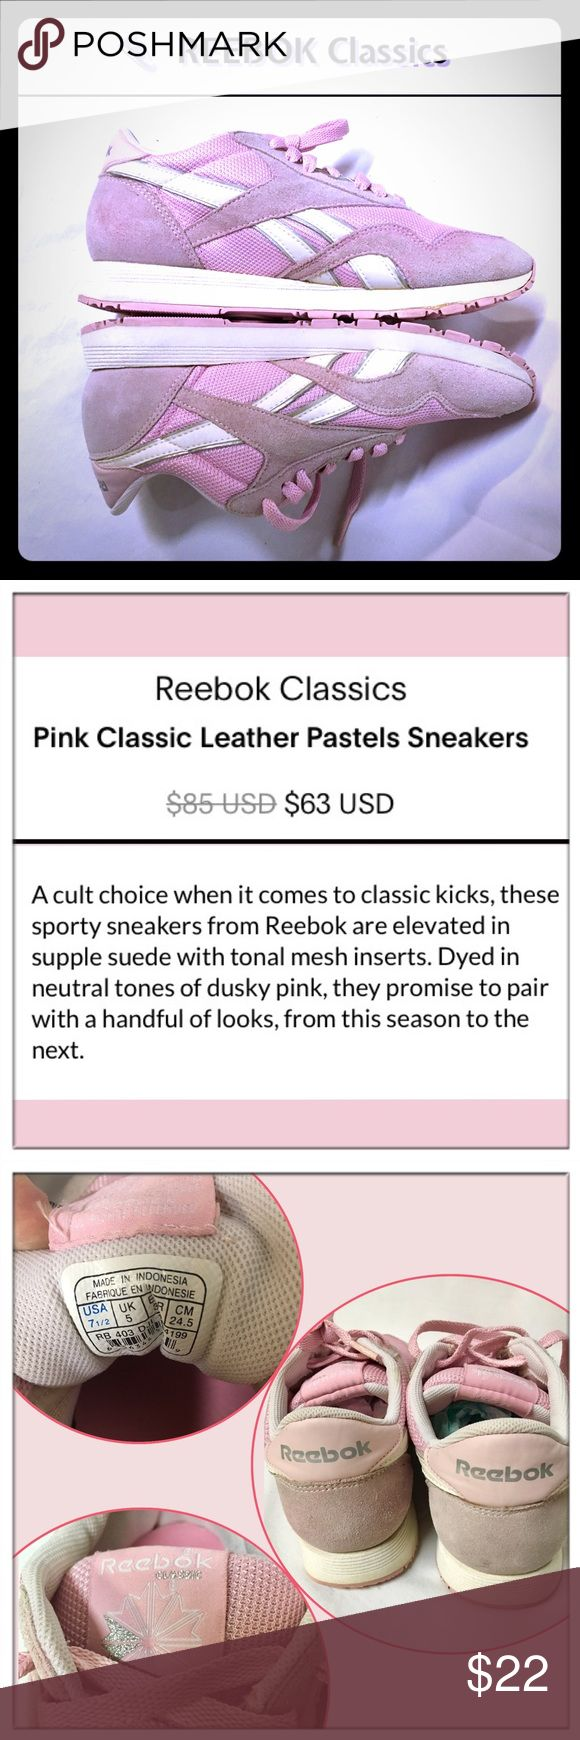 🆕REEBOK Classic dusty rose sneakers 👟 Reebok Classic style, suede & mesh dusty rose, pink sneakers in GUC, Sz 7.5. I  just put in brand new Memory foam insoles inside. More details in photos. This is an older shoe & price reflects that. Still in good condition & very clean for their age. Reasonable offers welcome. Reebok Shoes Athletic Shoes